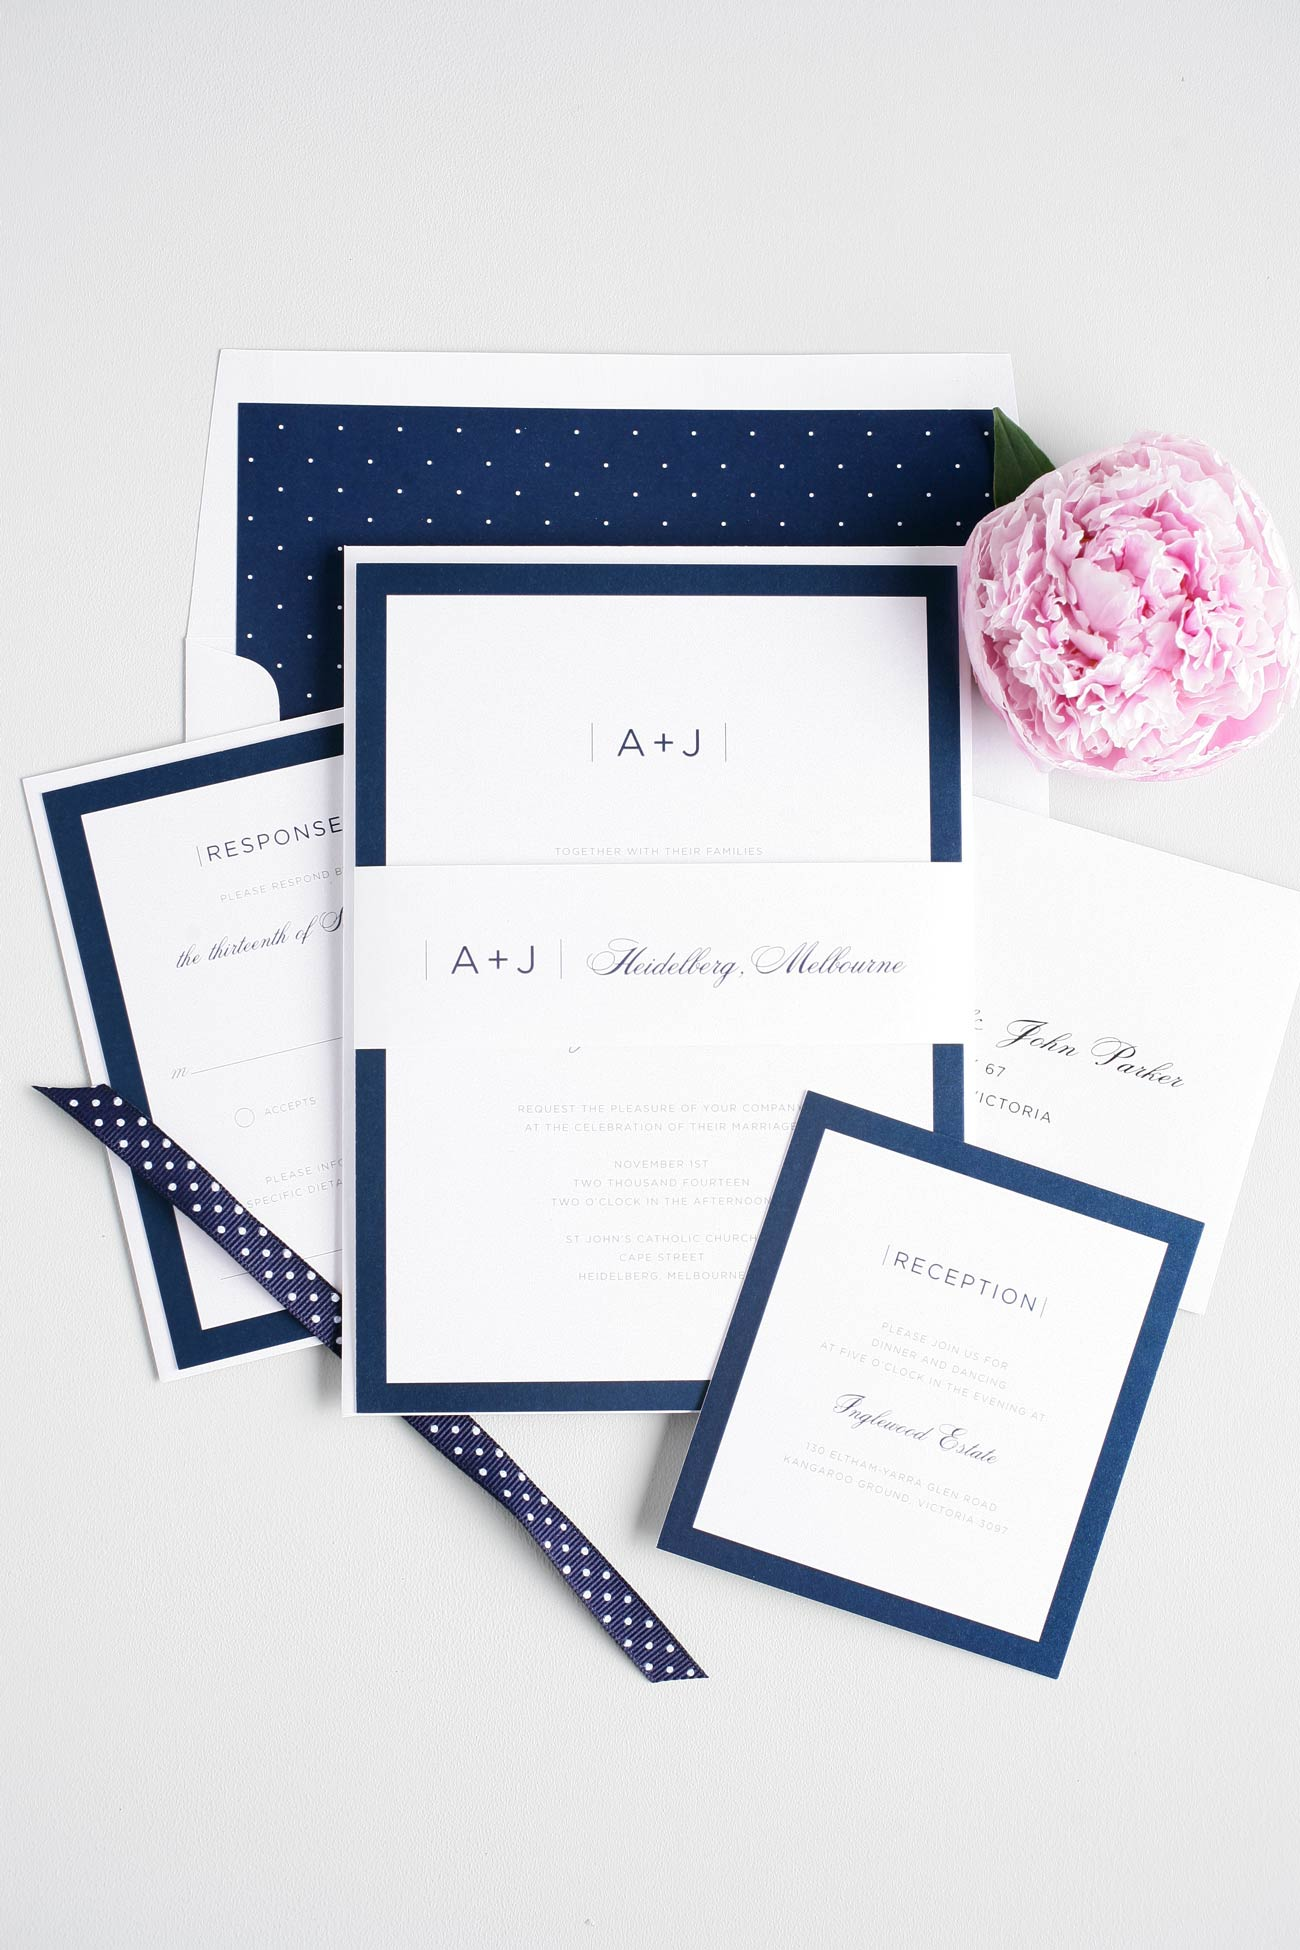 Elegant and Sophisticated Navy wedding invitations with polka dots